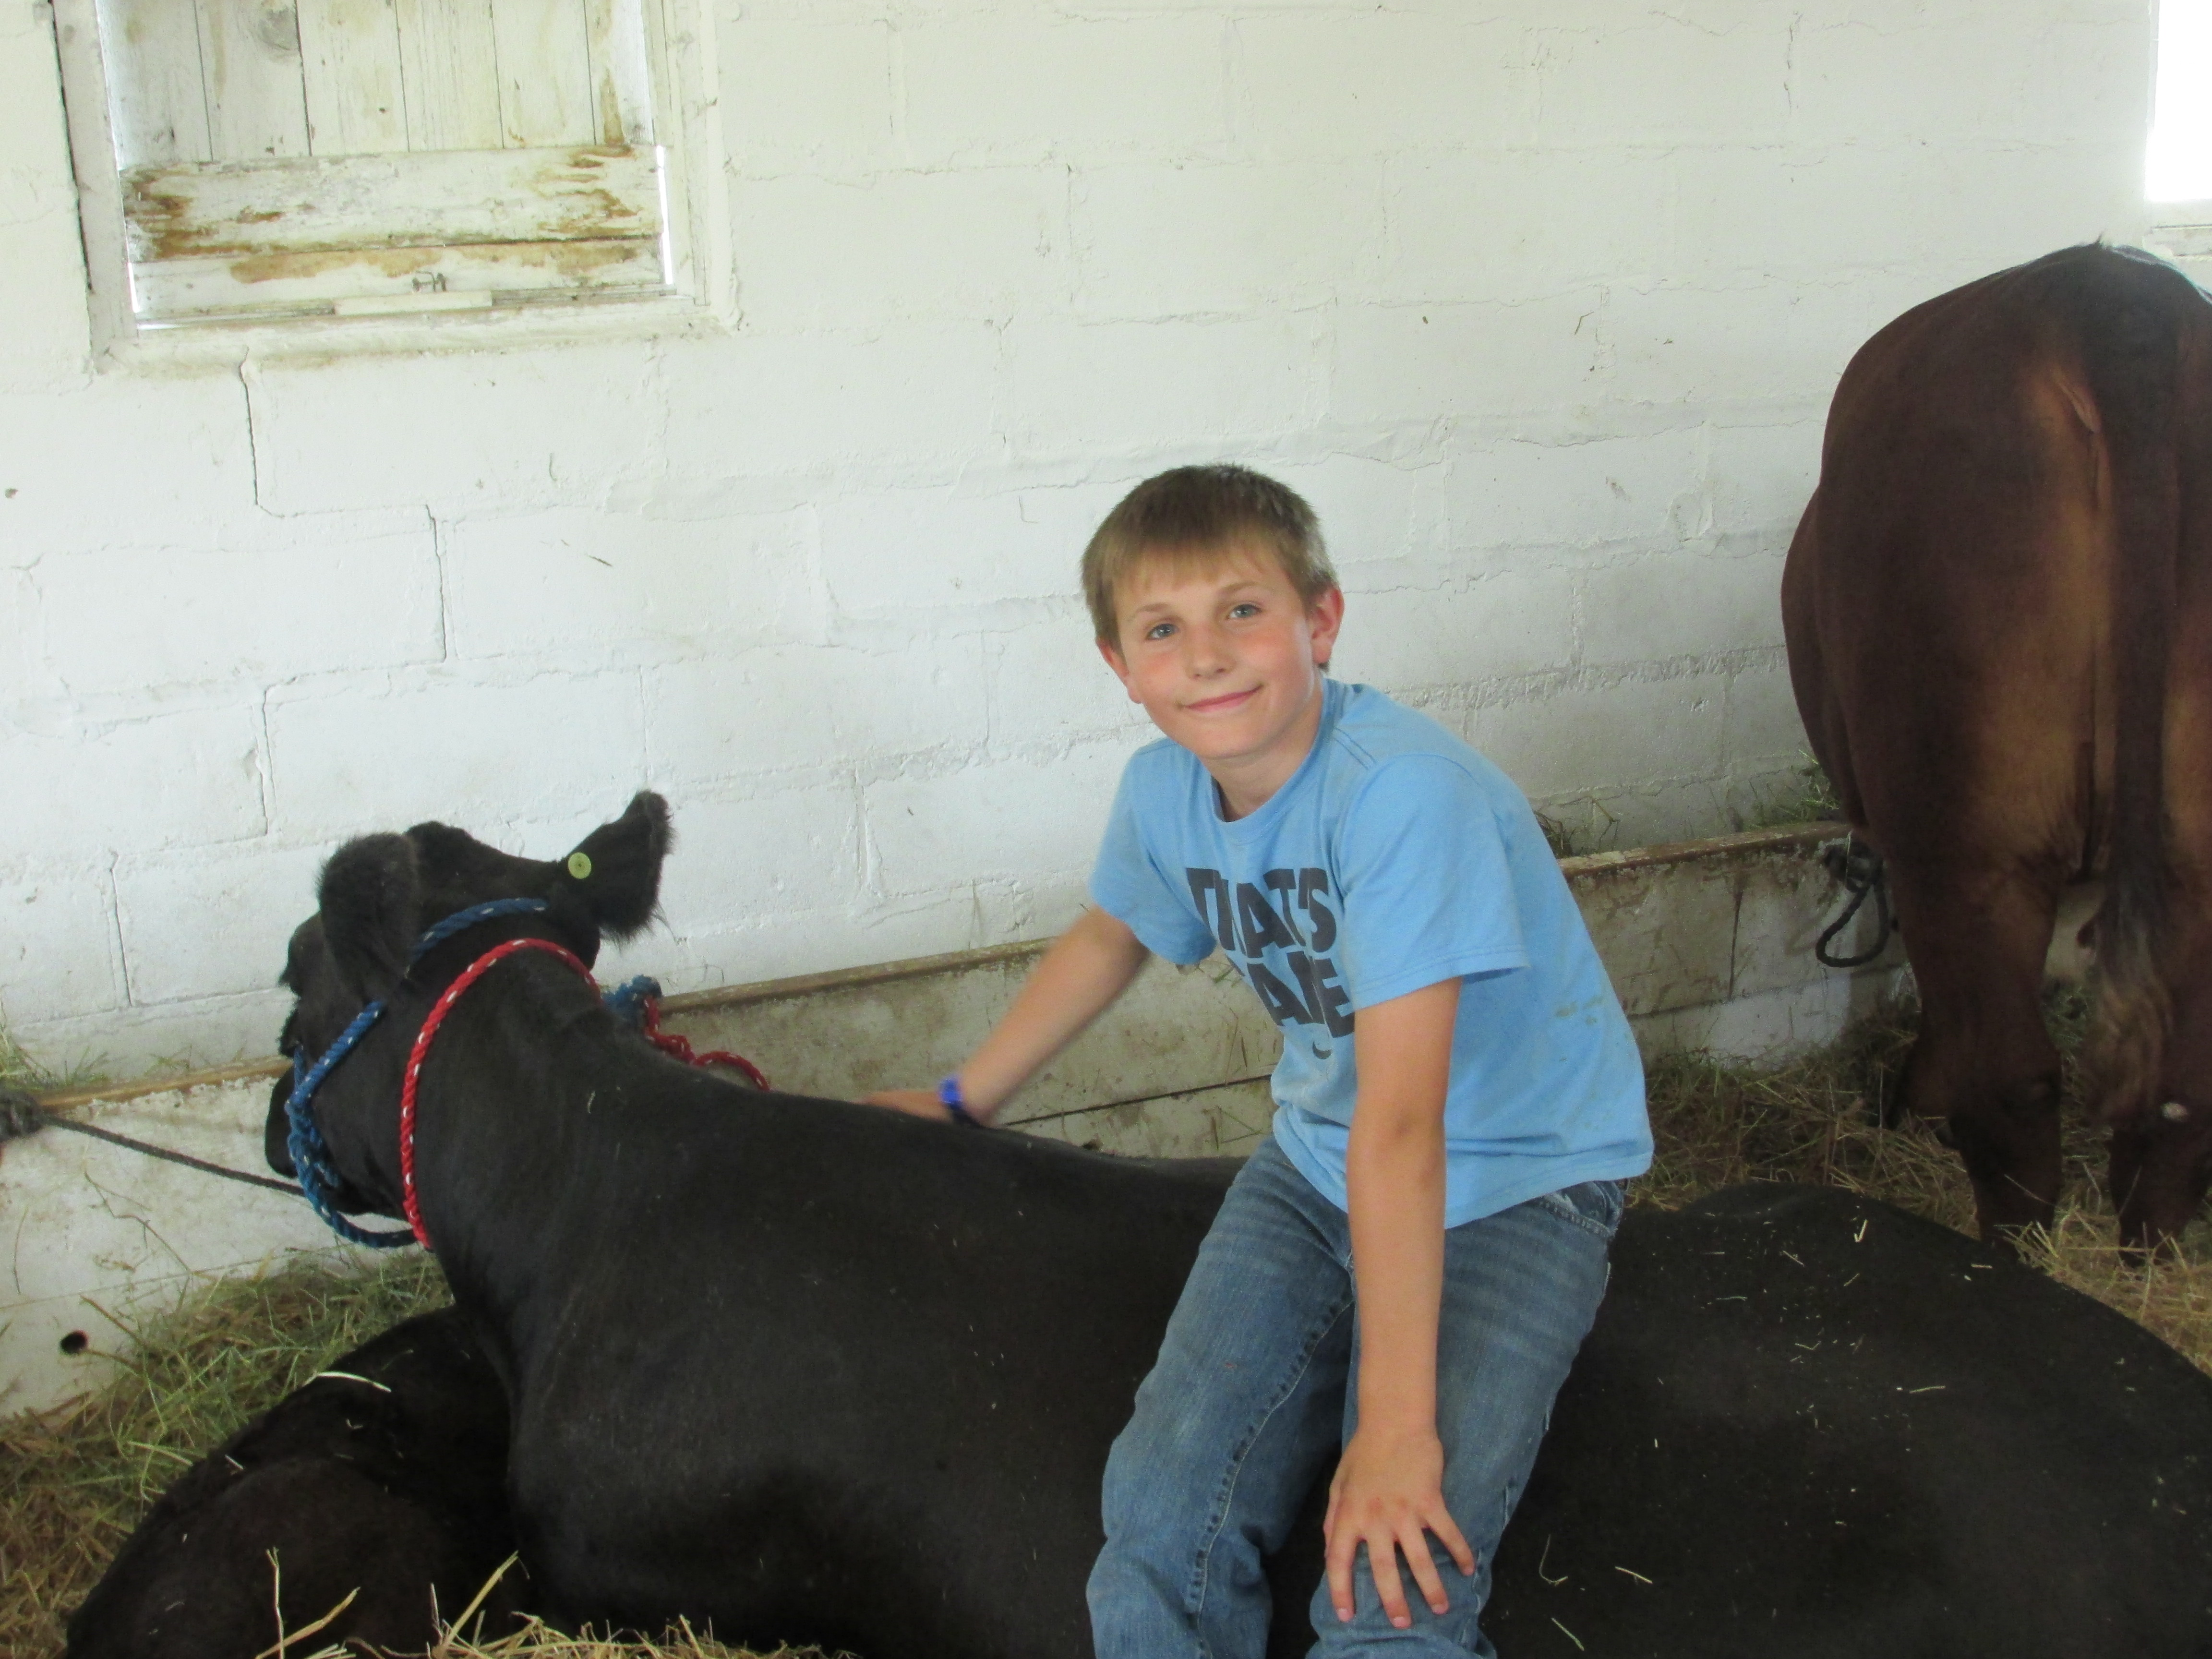 Boy and his steer